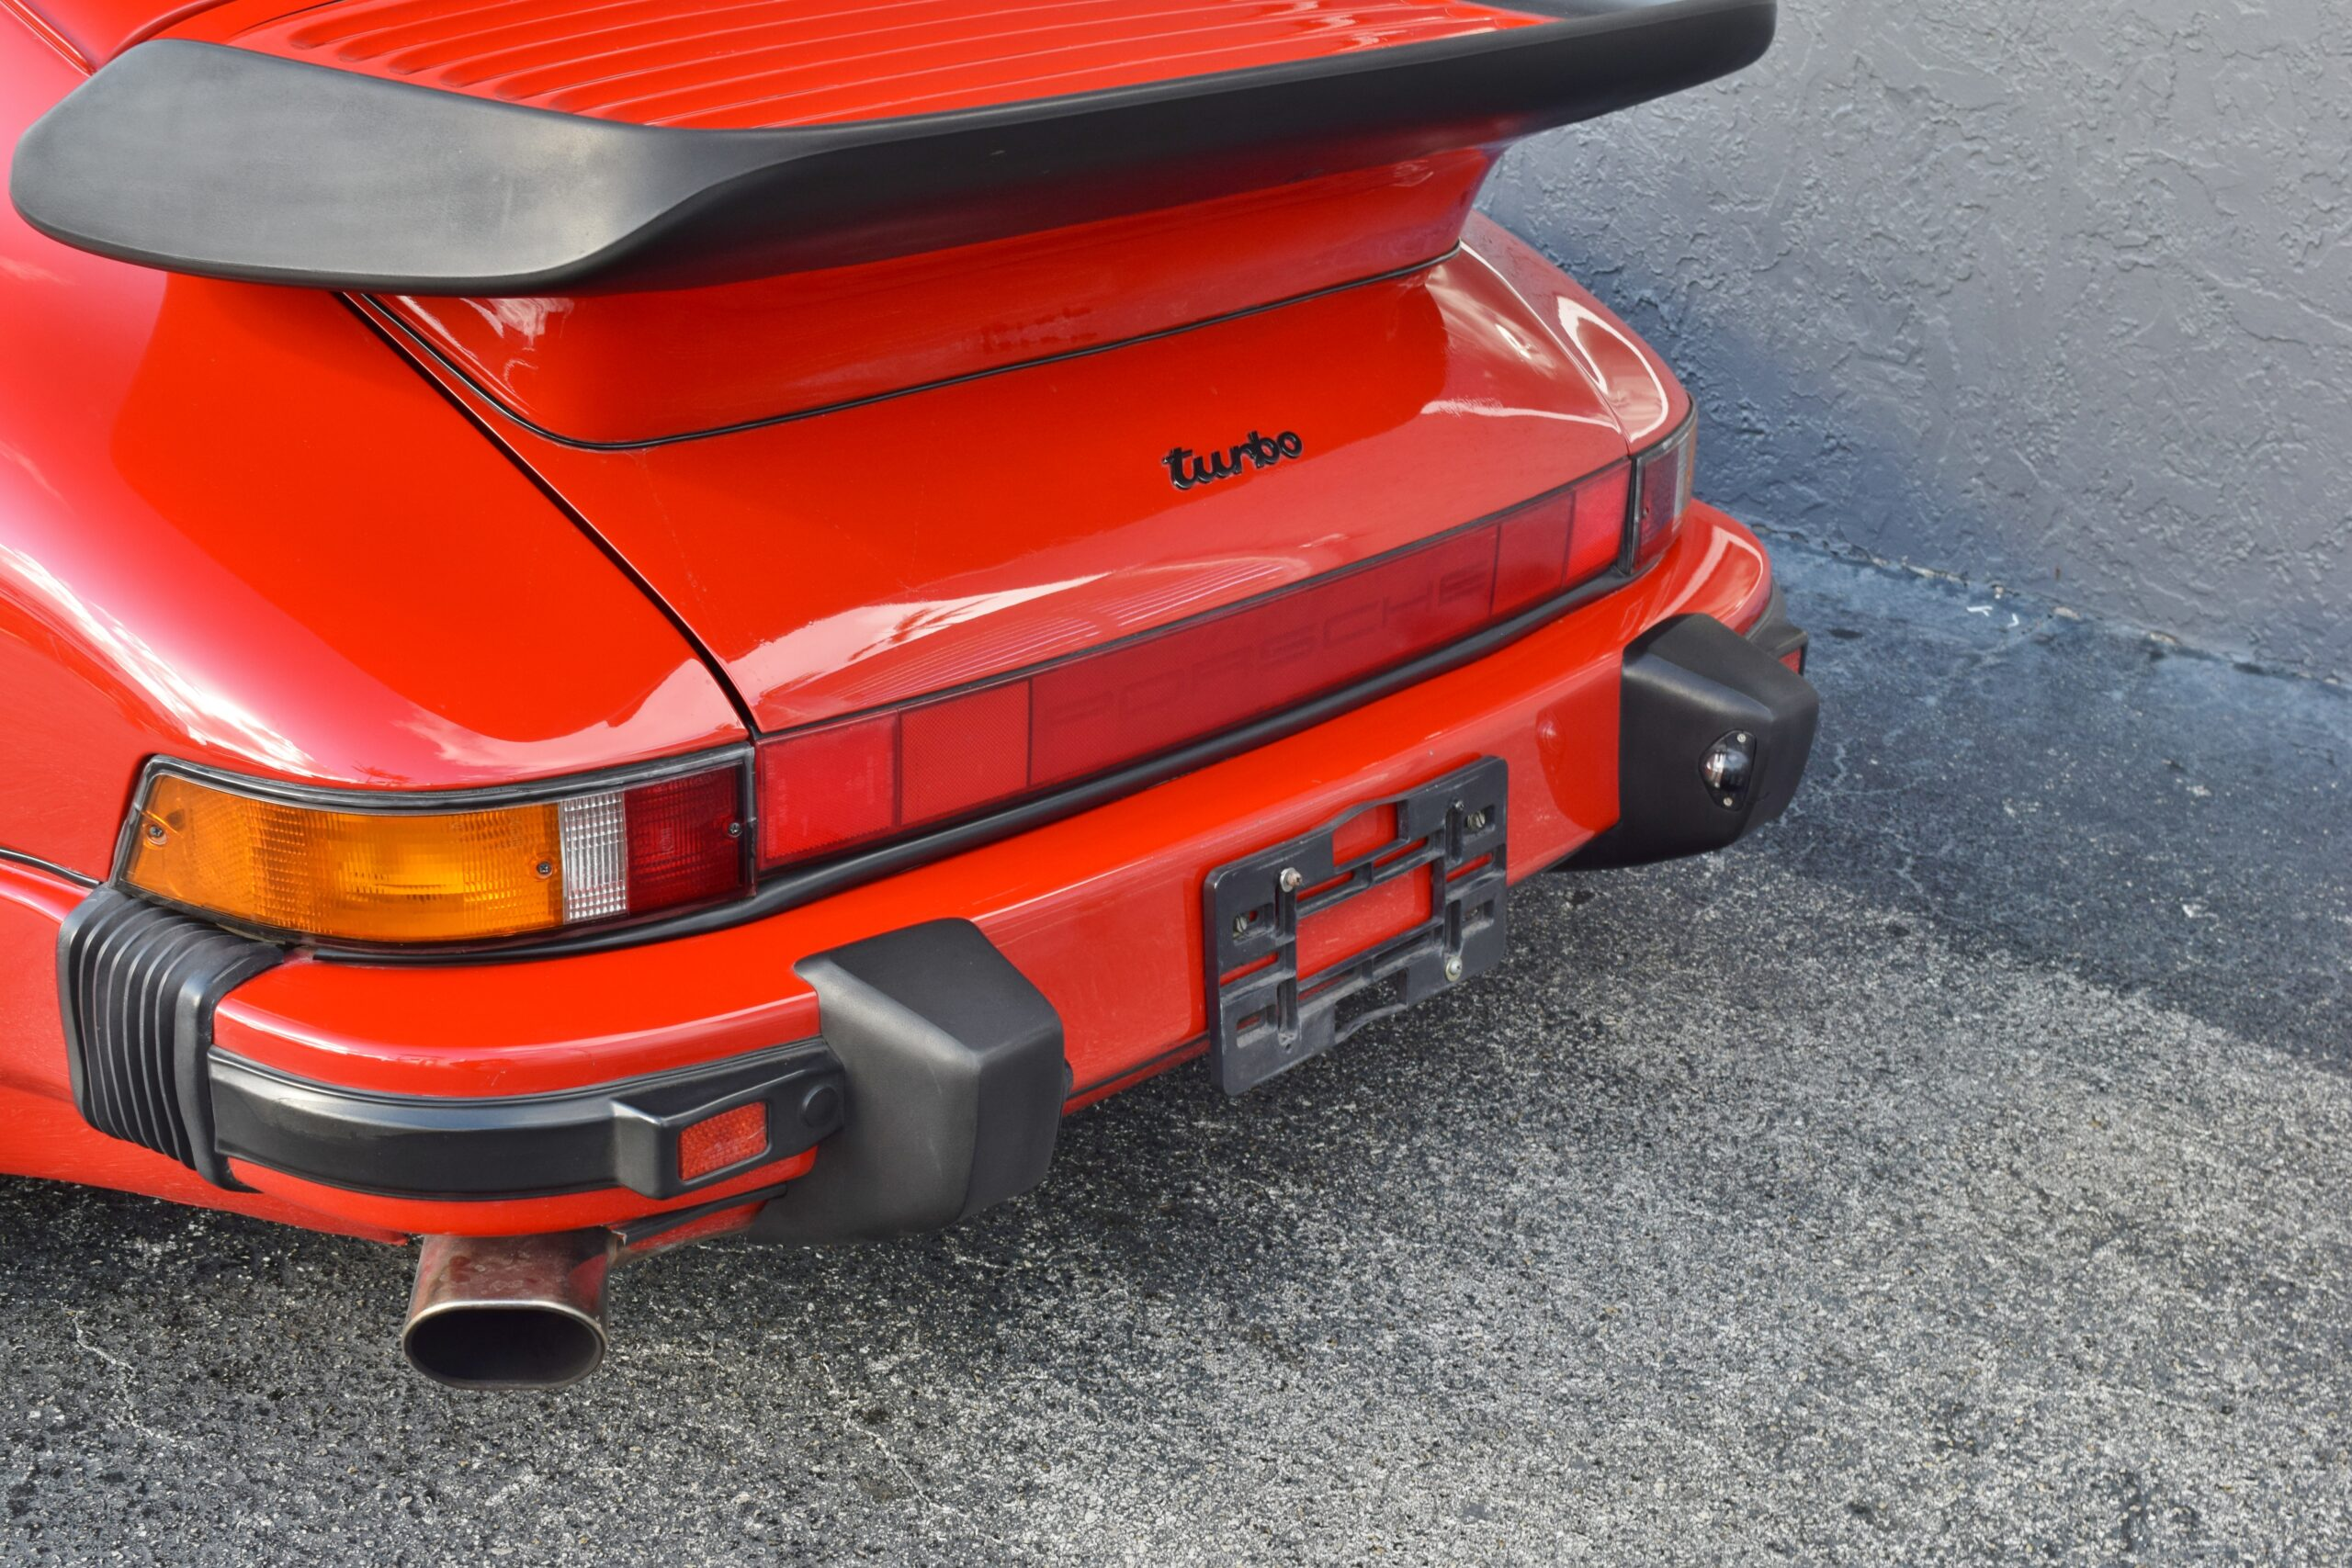 1979 Porsche 930 Turbo Matching Numbers – Service Records -Engine & Transmission Refresh – Full Records